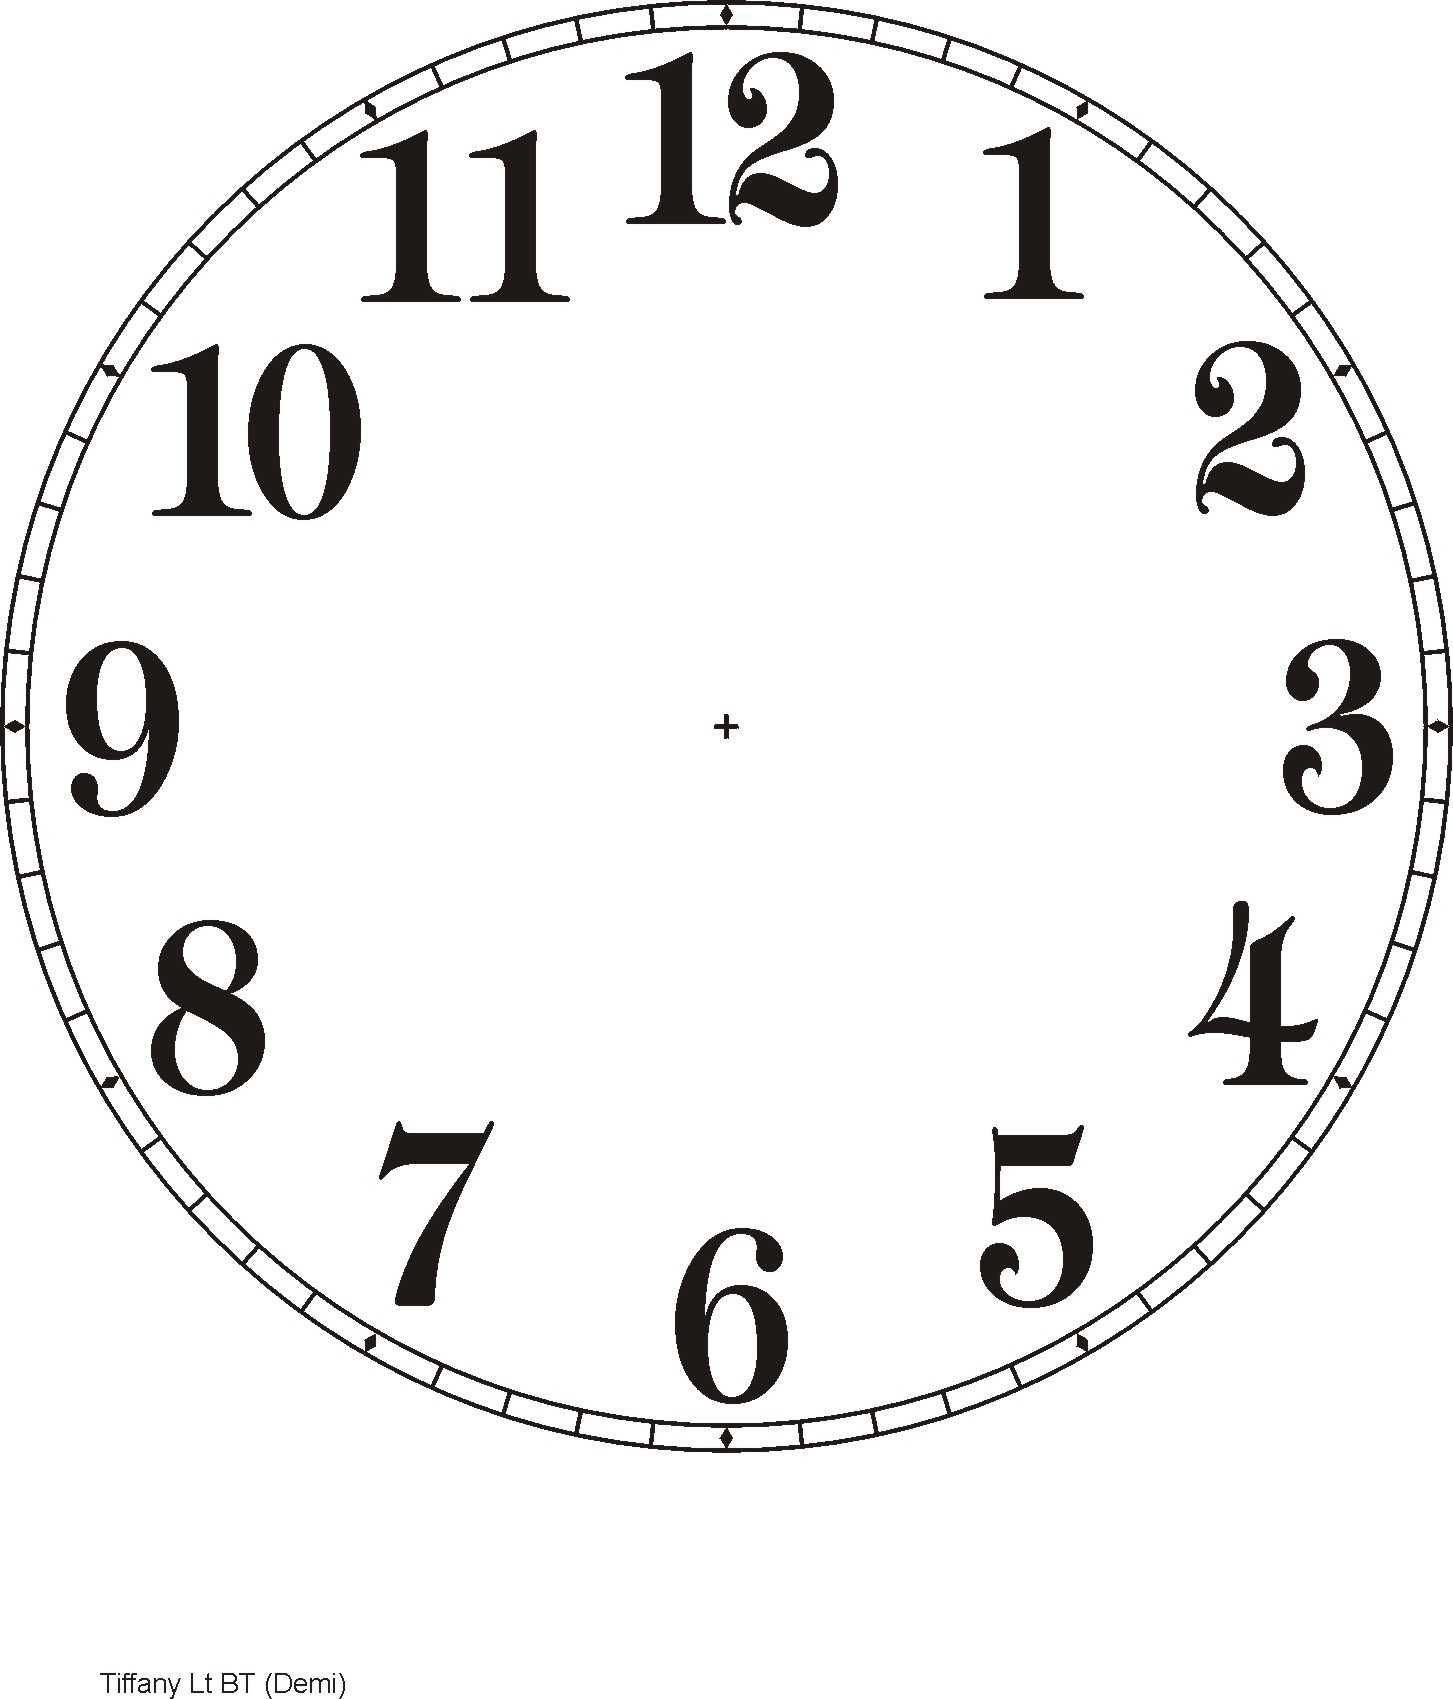 photograph regarding Printable Clock Face With Hands known as Printable Clock Templates Below are a number of illustrations: Do it yourself